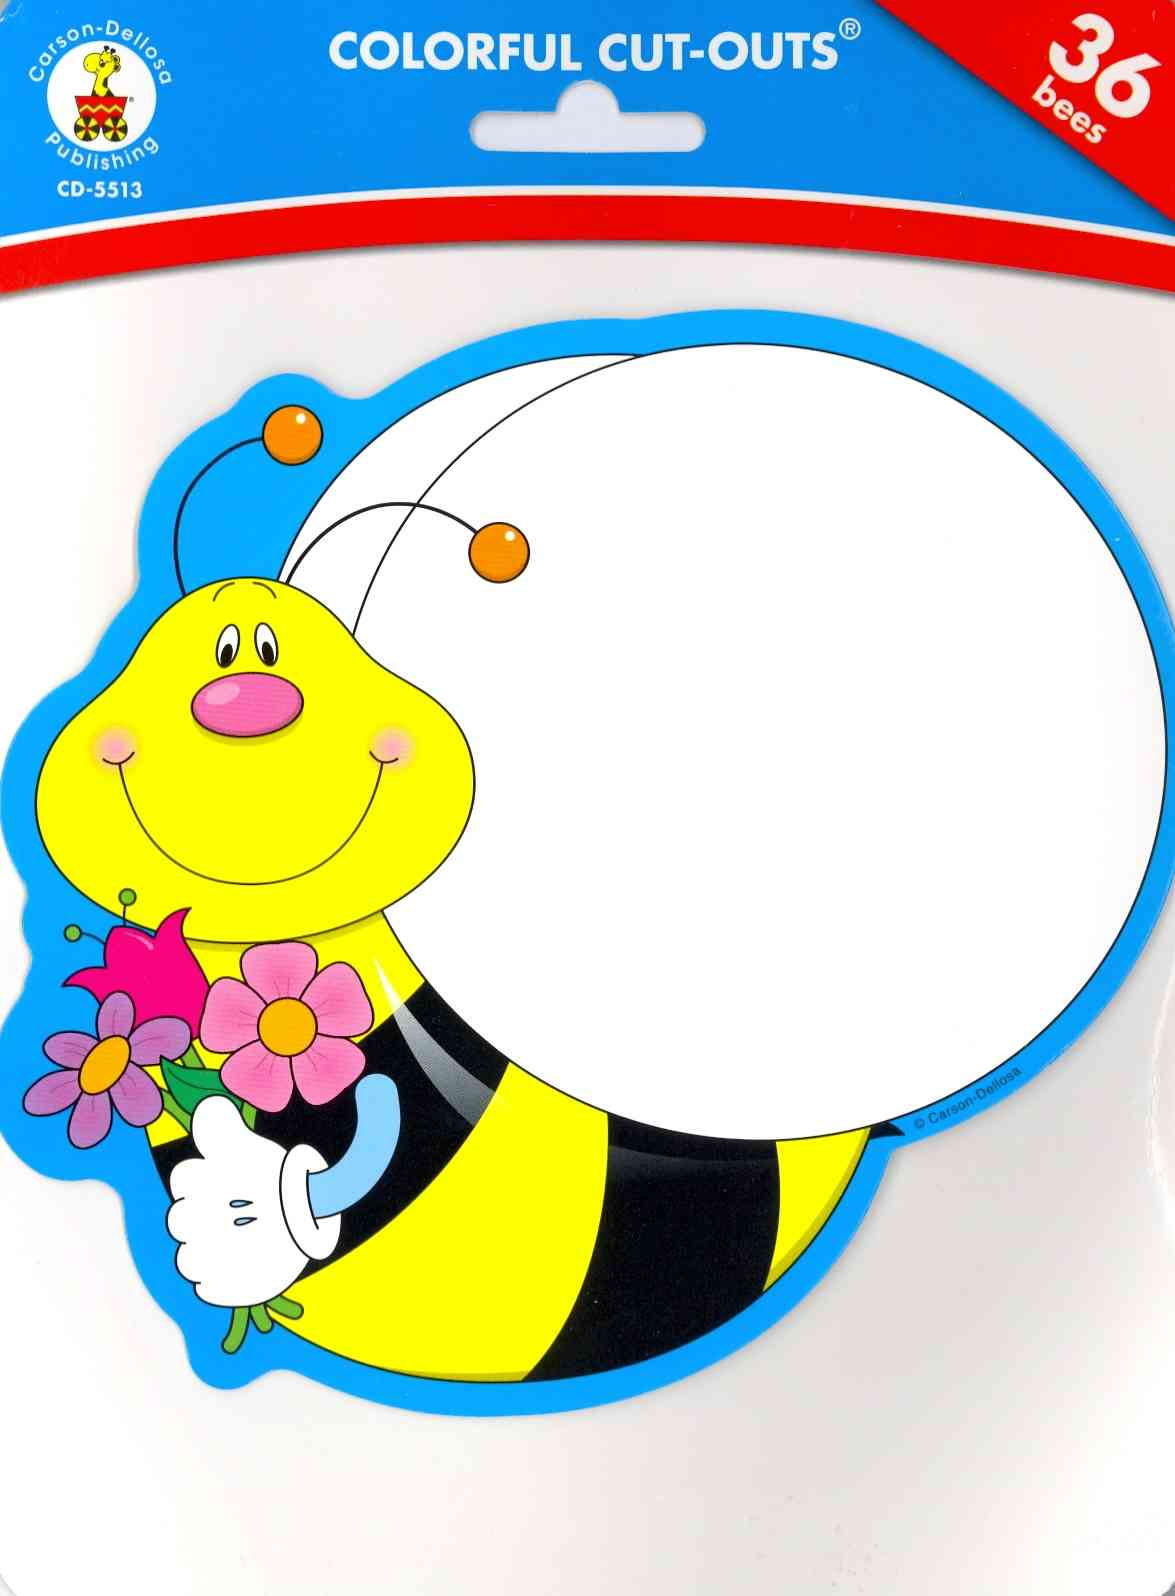 Bees Colorful Cut-Outs (Novelty book)